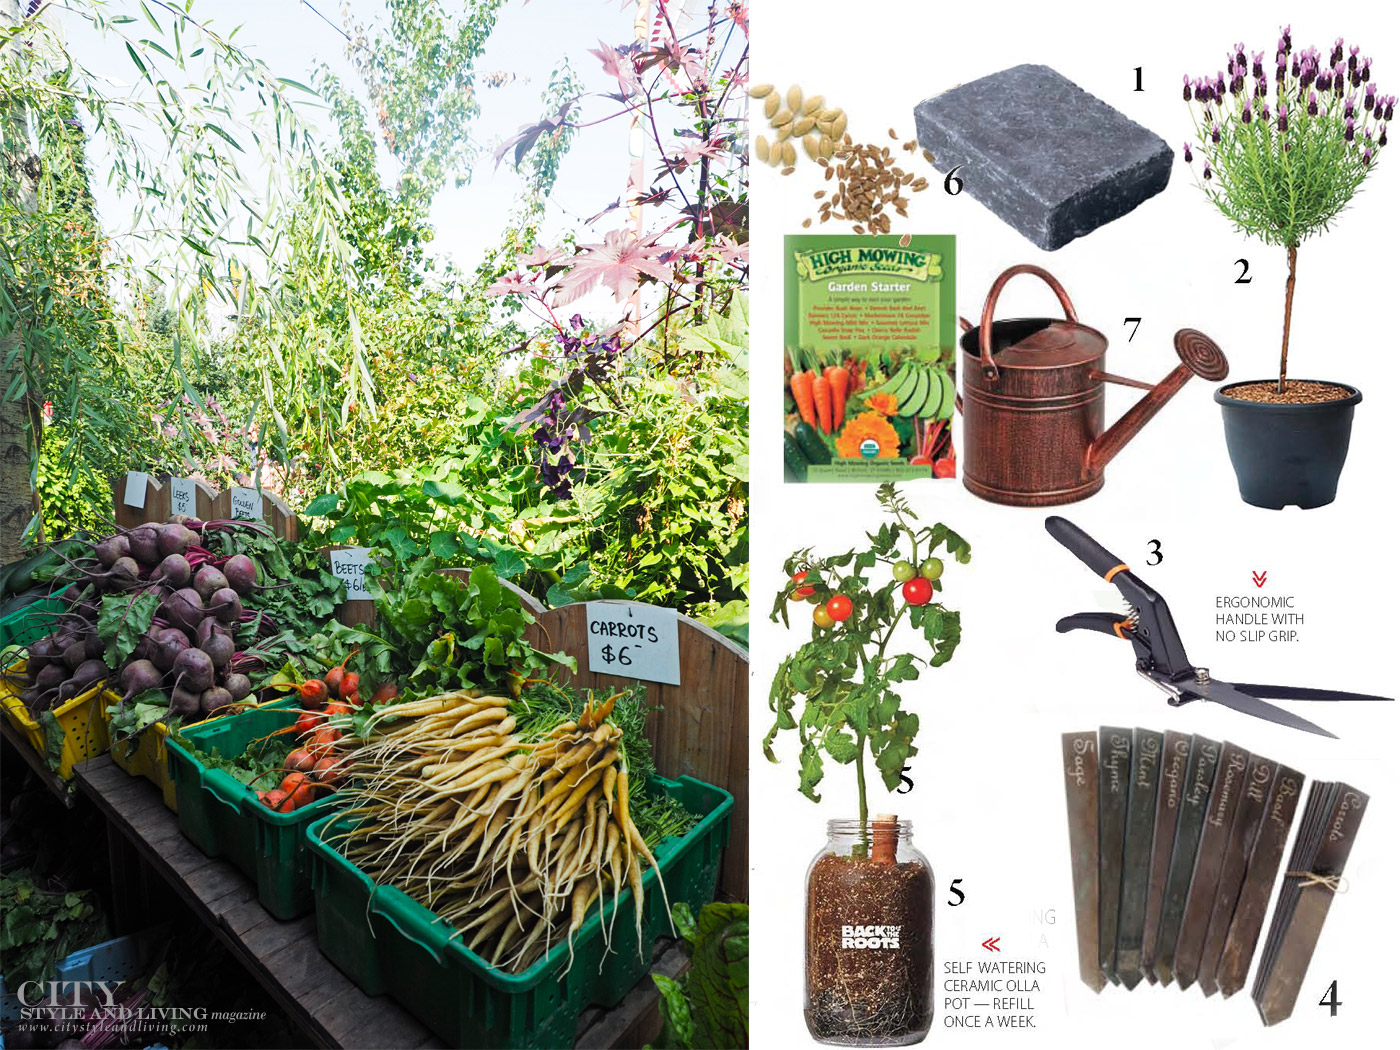 City Style and Living Magazine Summer Garden Market and Garden tools